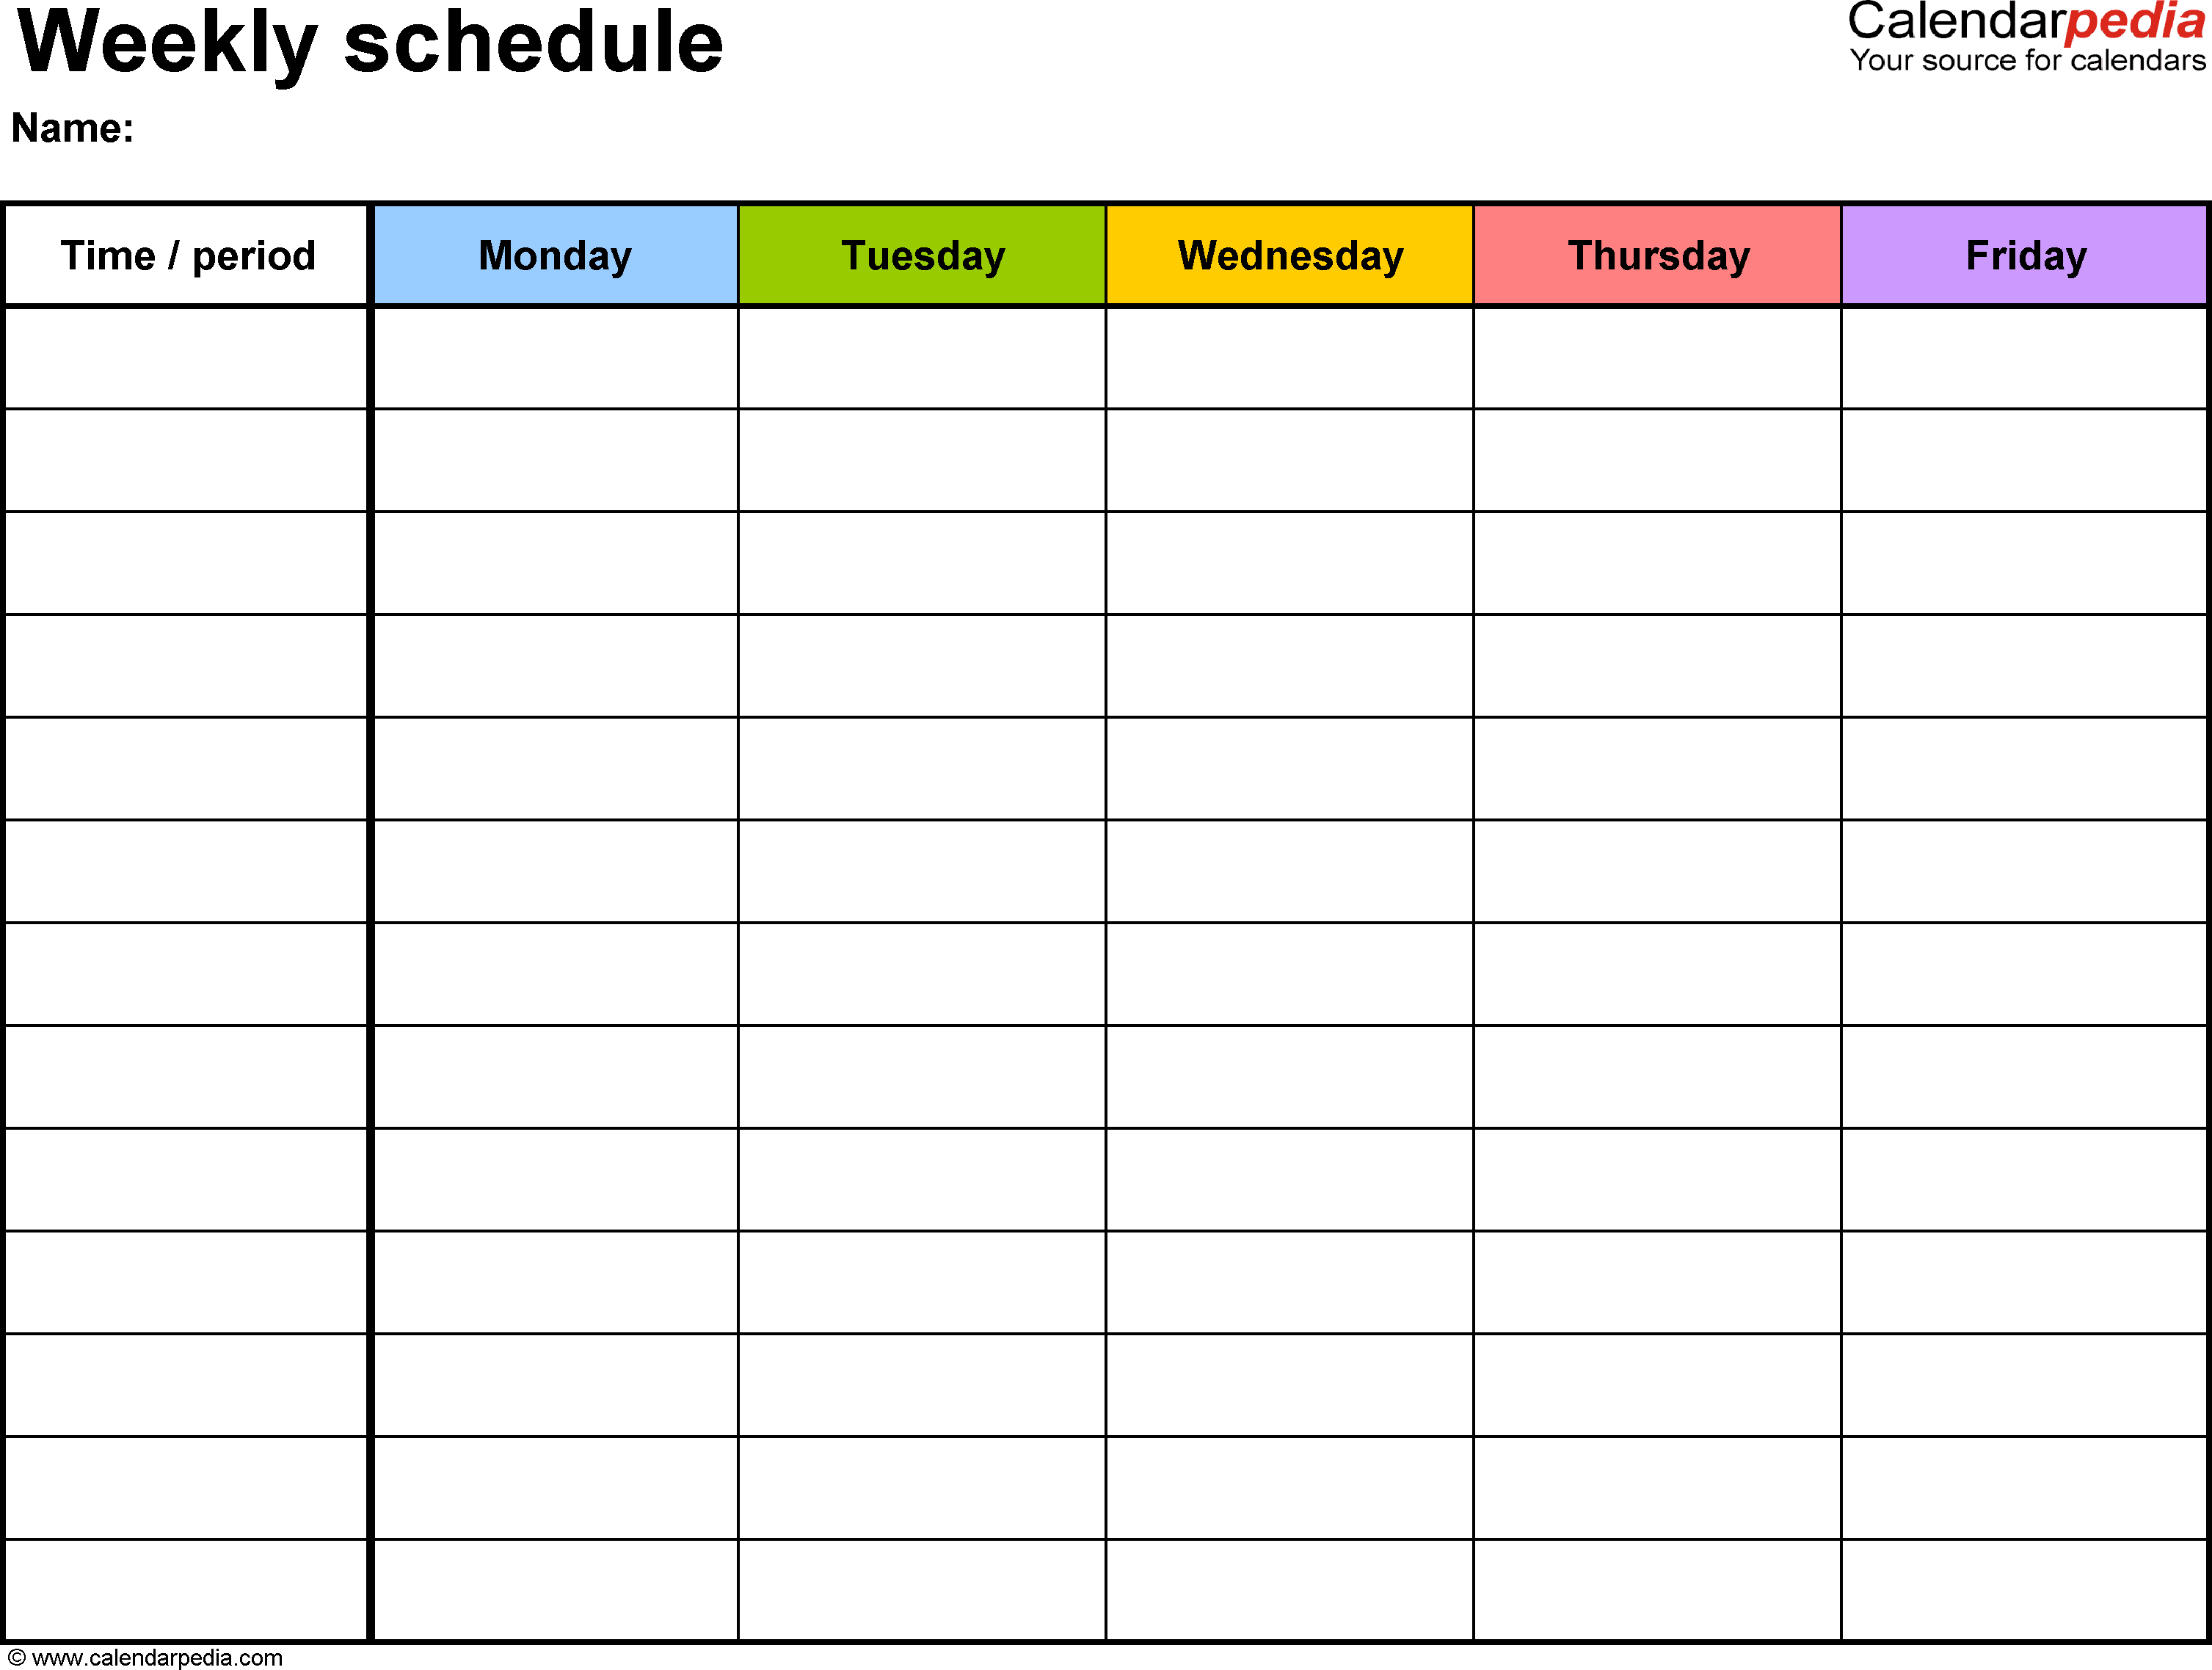 Weekly Schedule Planner Template Excel